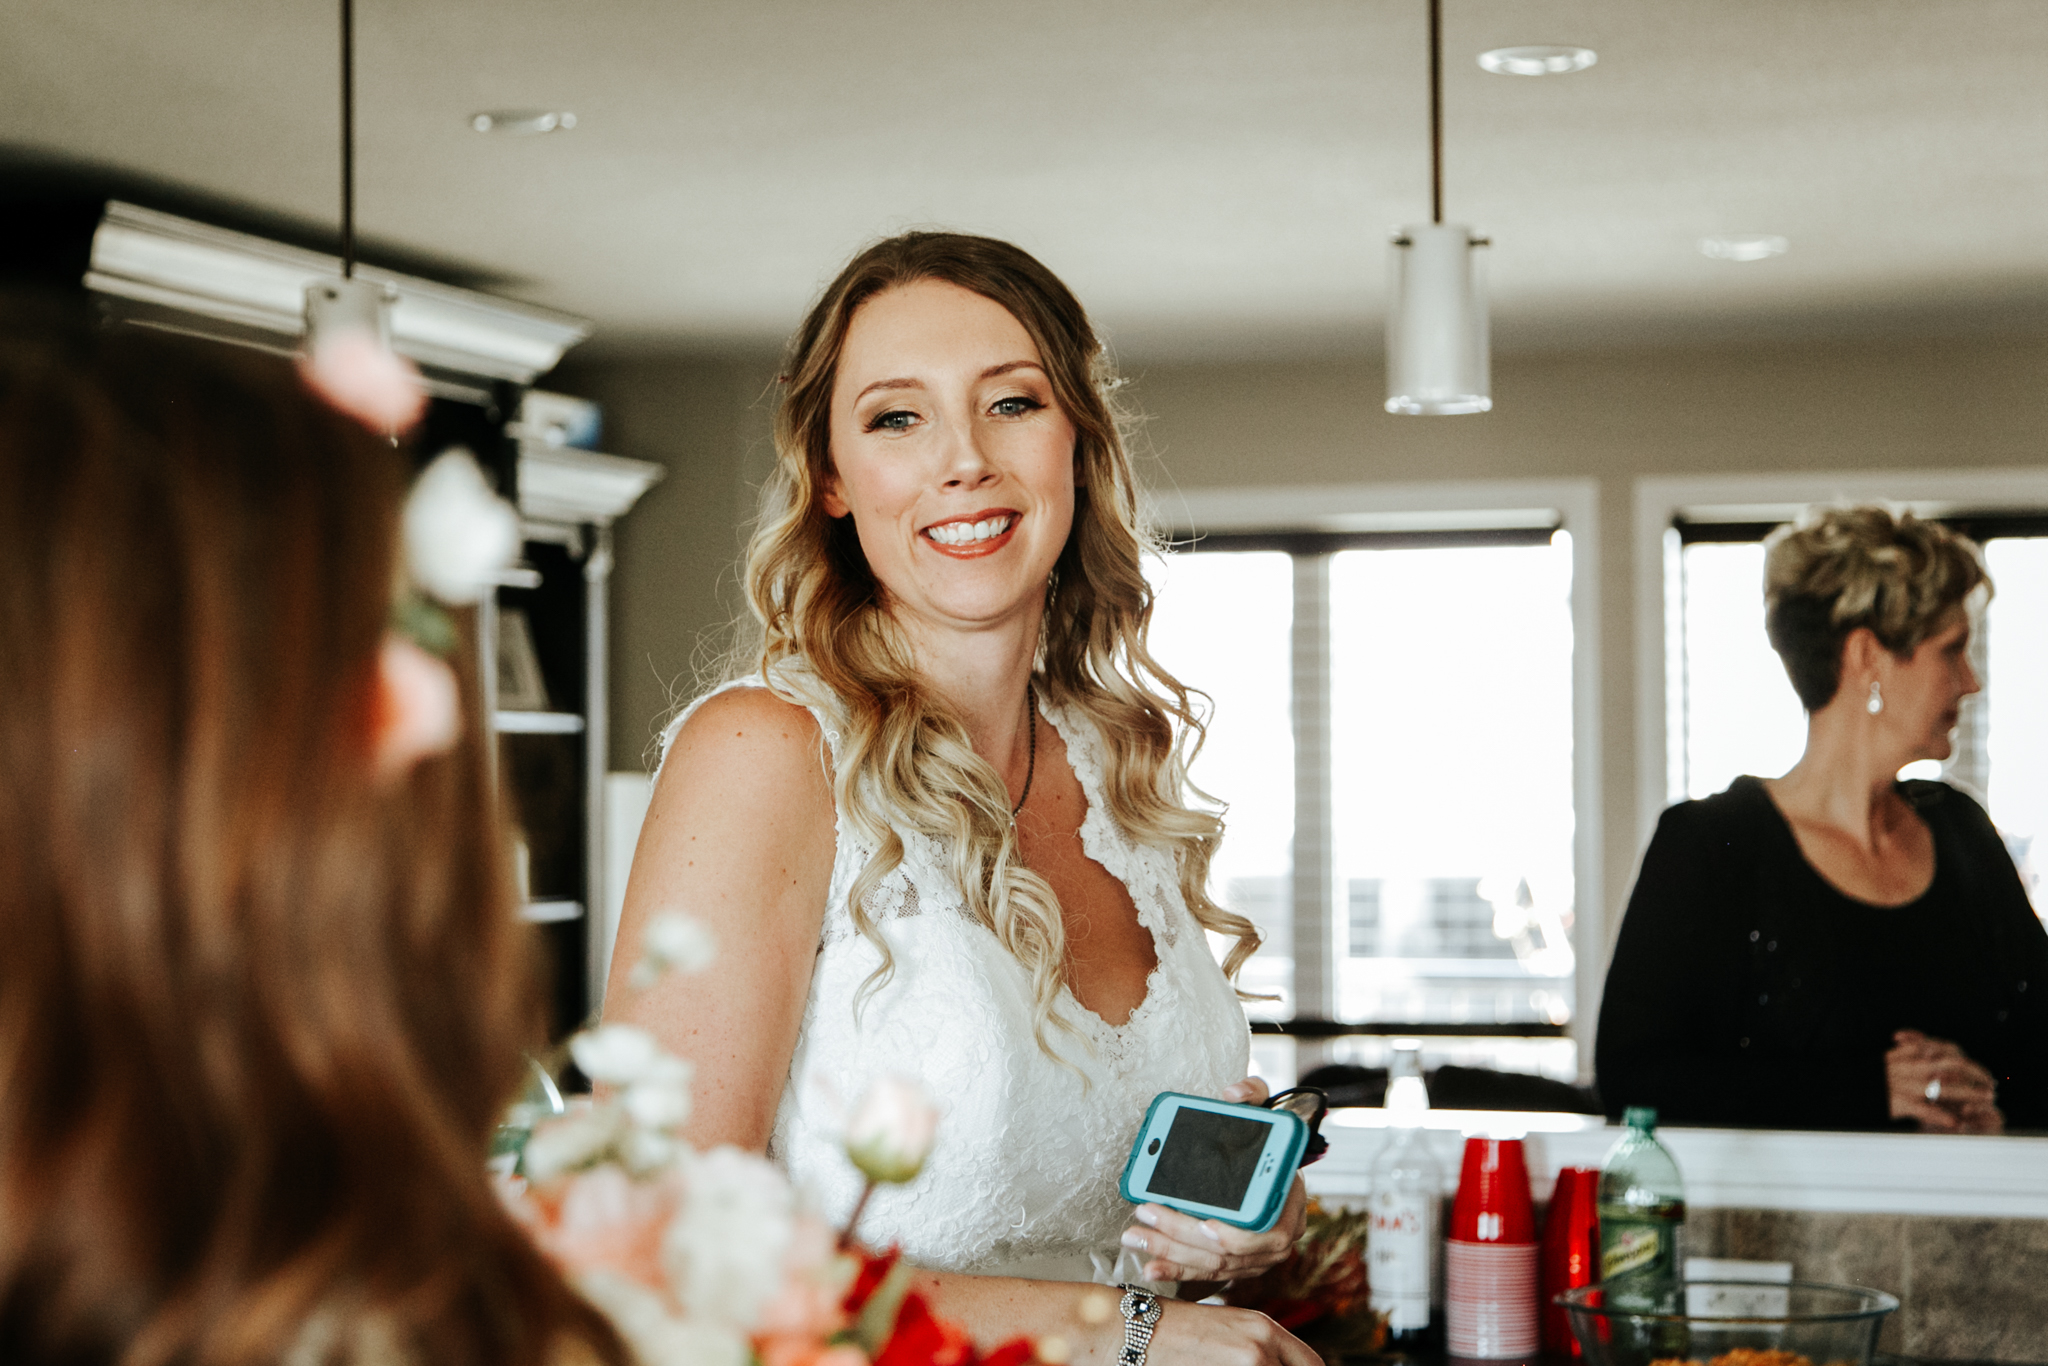 lethbridge-wedding-photographer-love-and-be-loved-photography-bride-prep-photo-image-picture-15.jpg